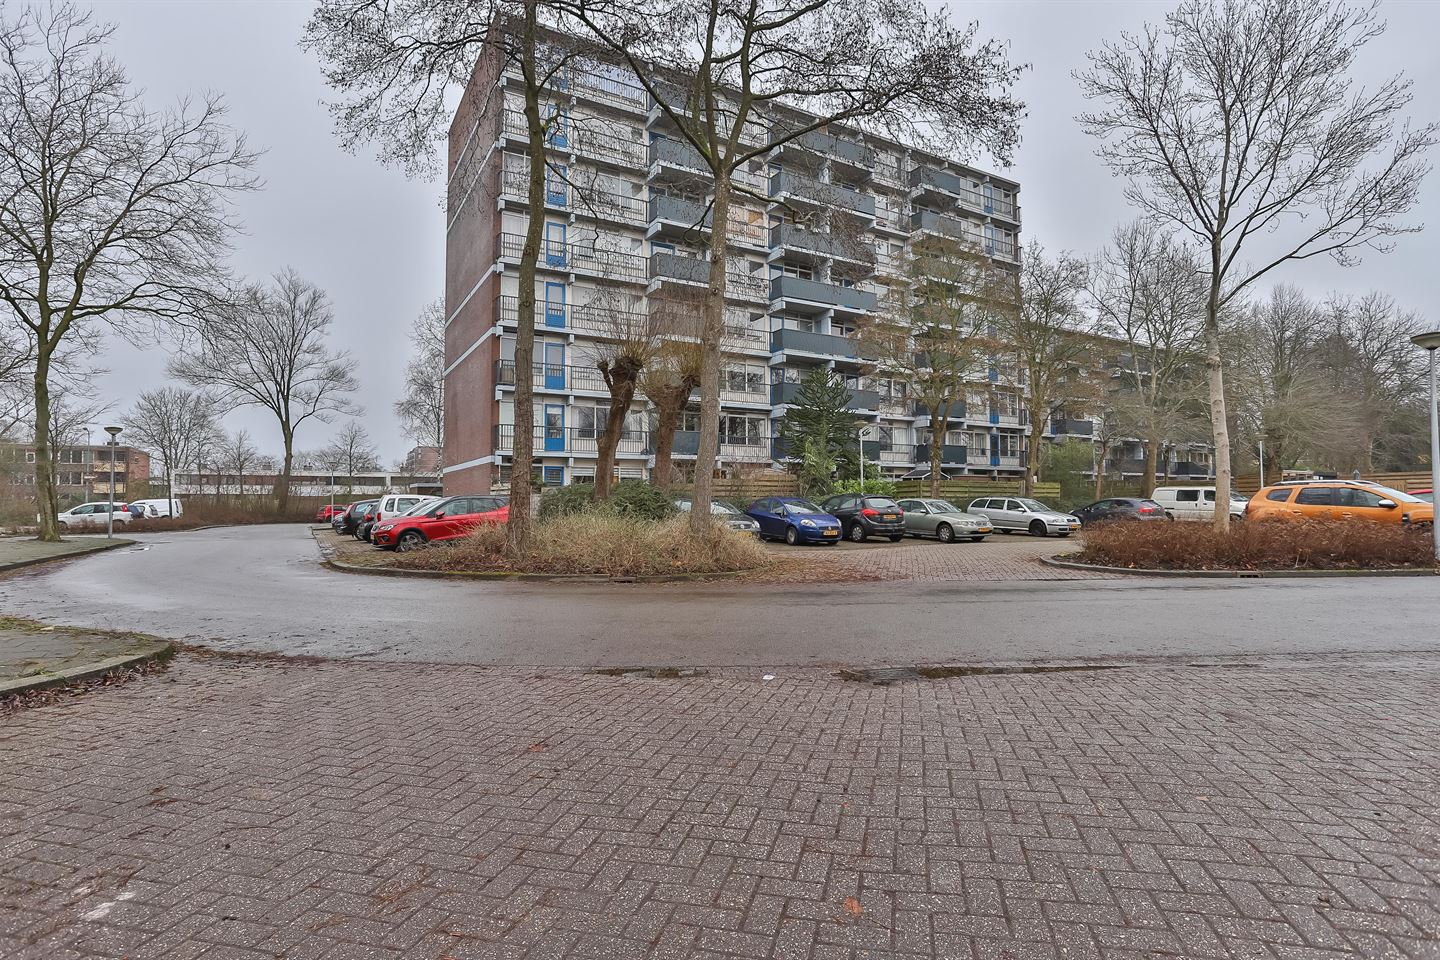 View photo 1 of Meerpaal 26